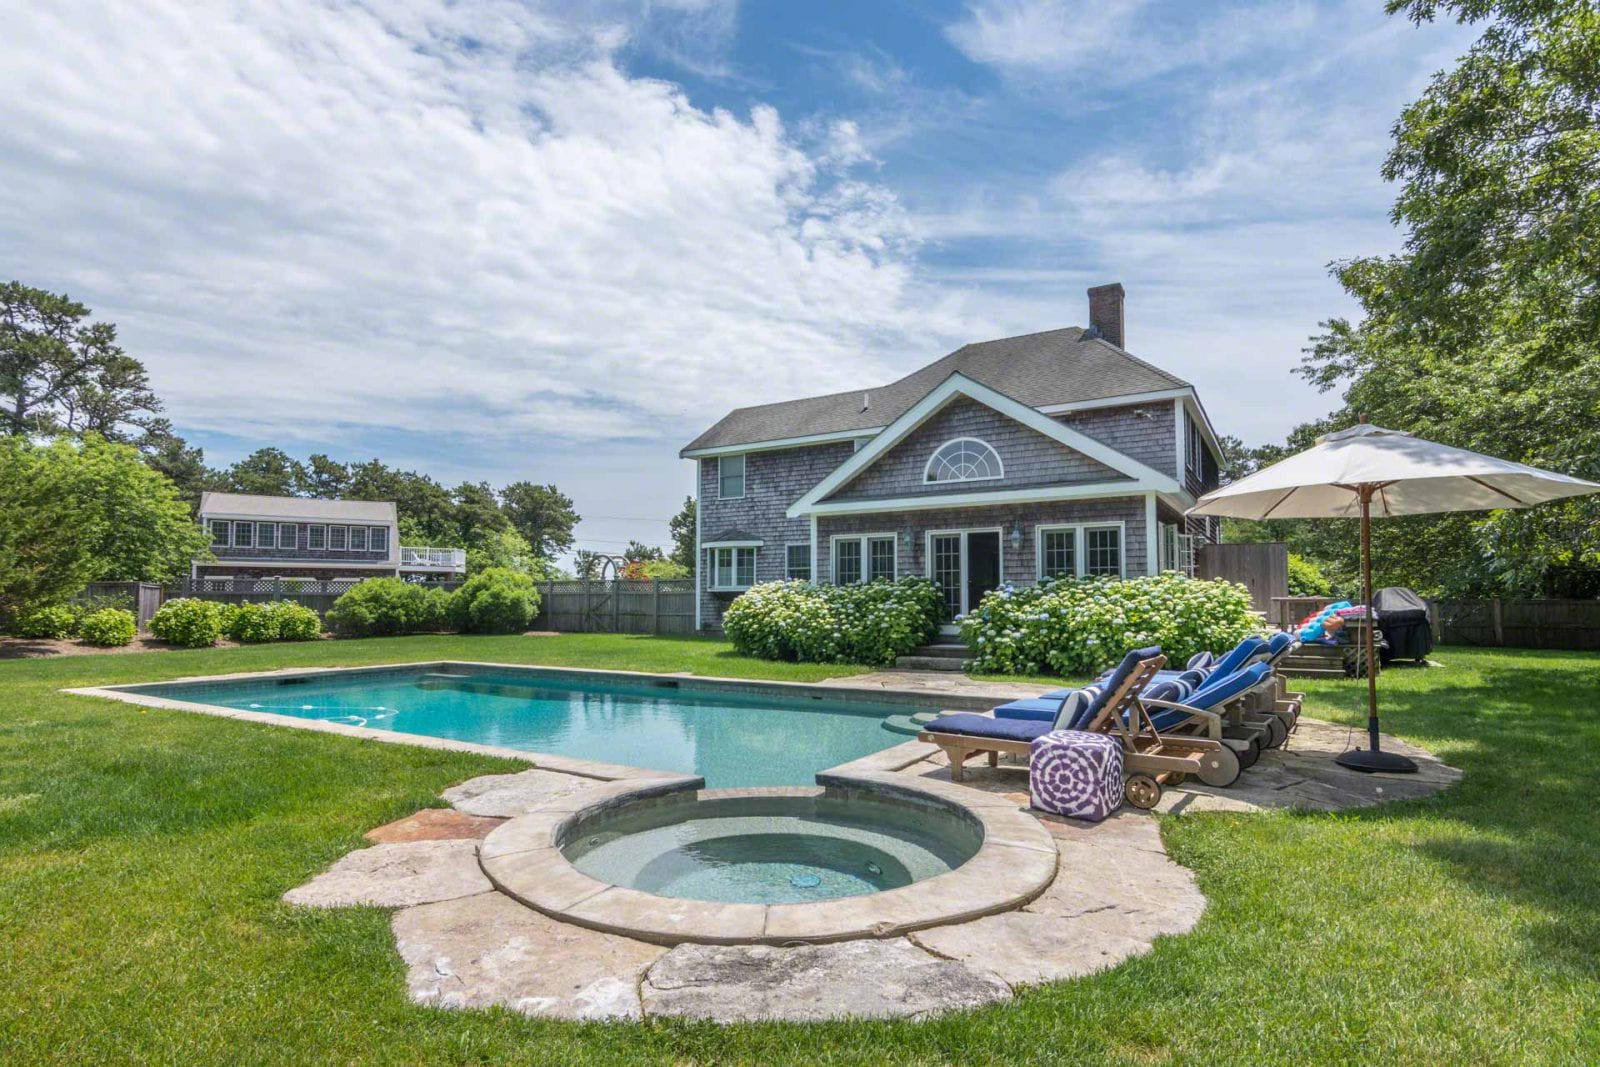 Martha's Vineyard Vacation Rentals With Ferry Tickets For Summer 2019